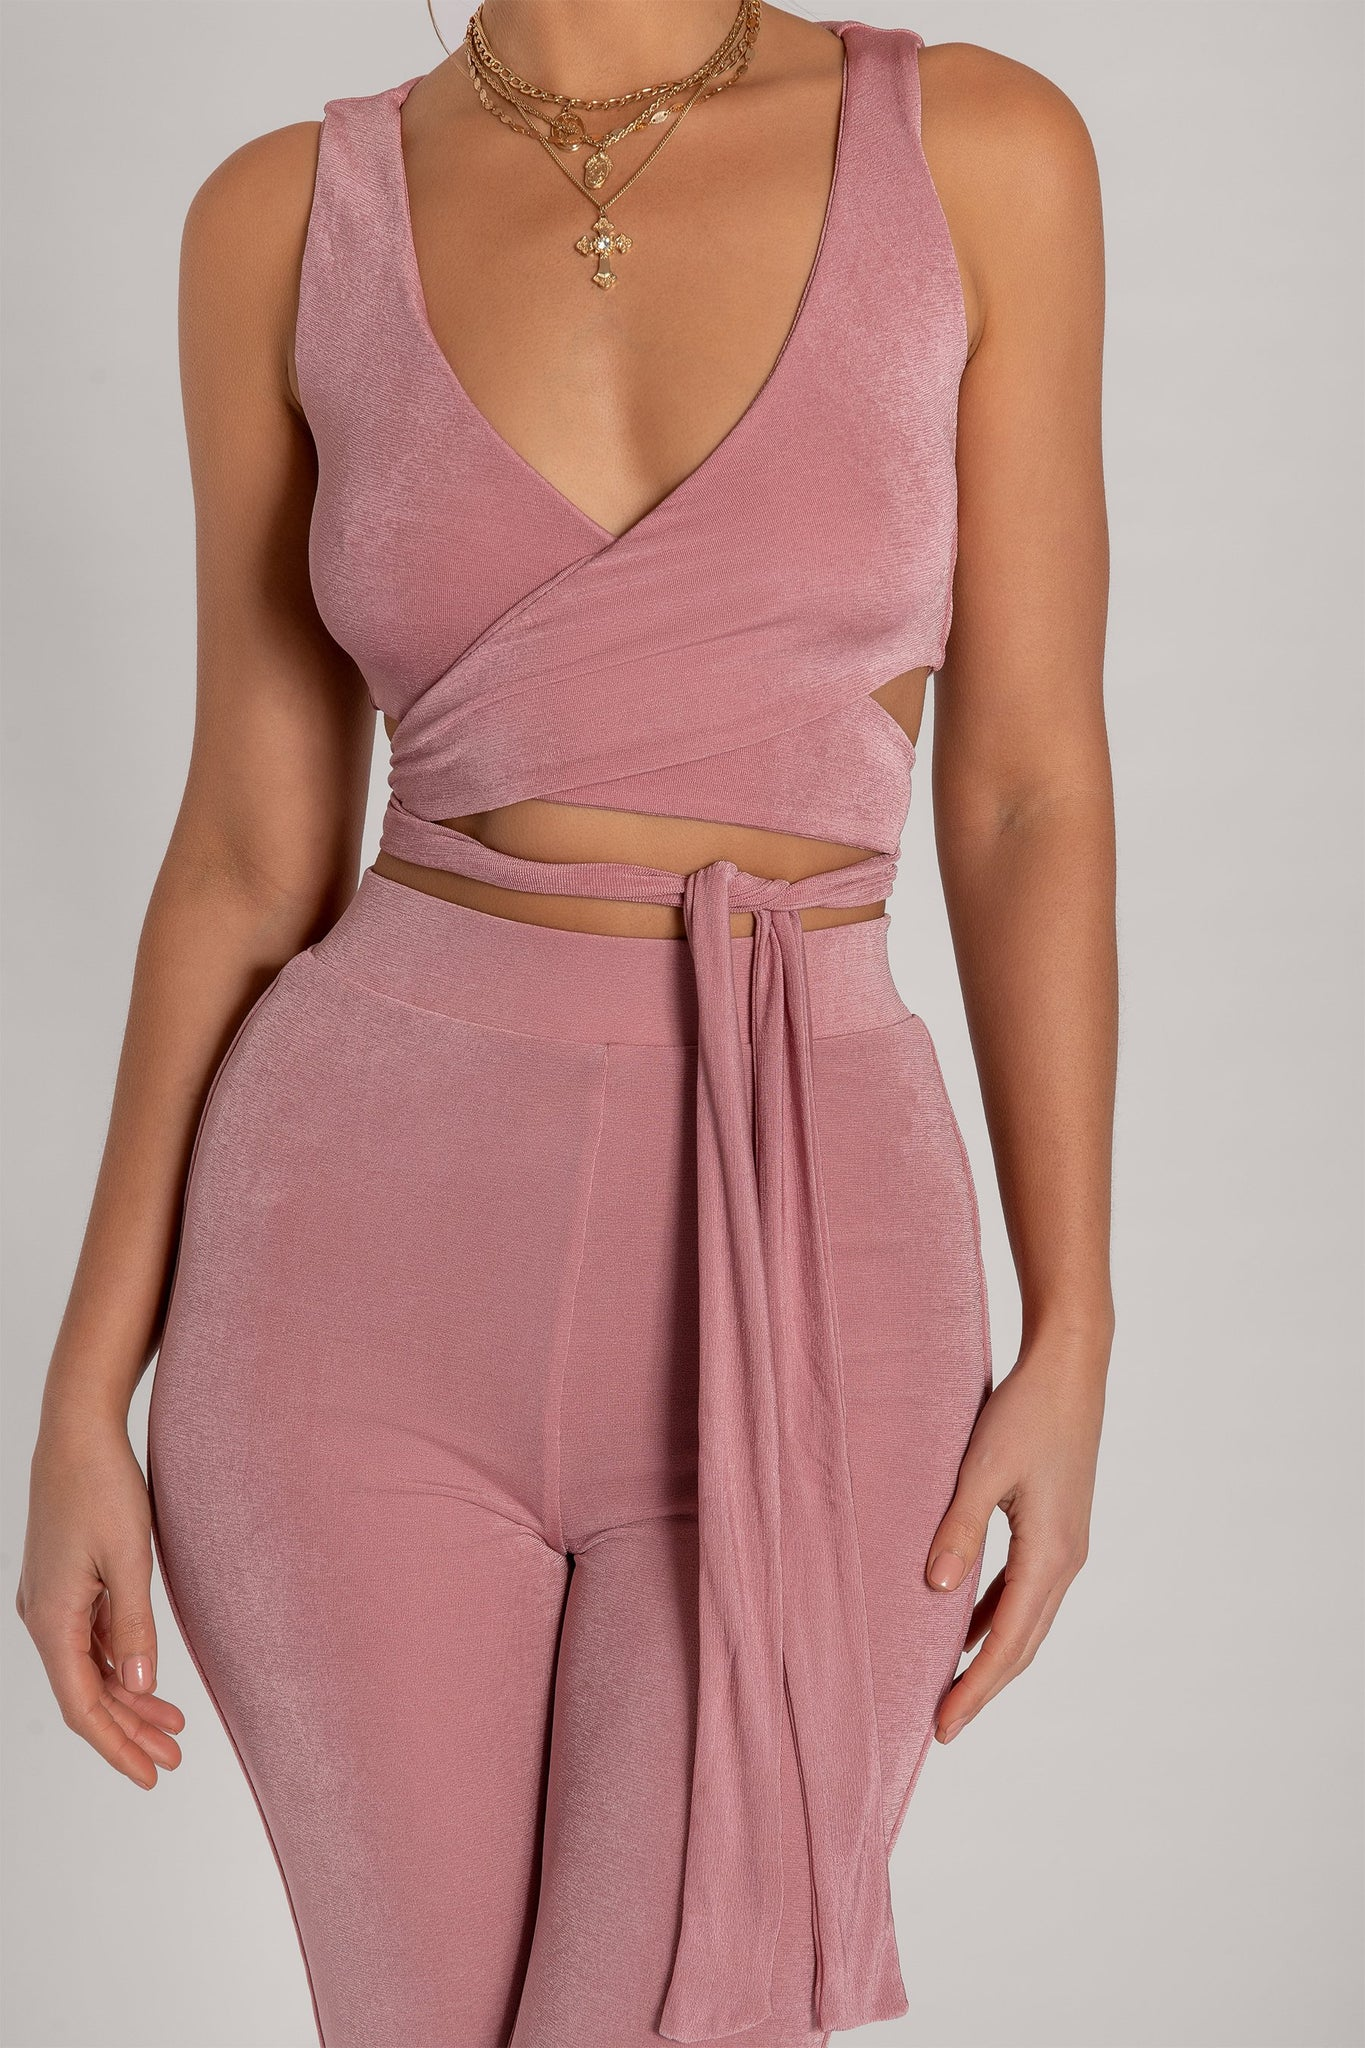 Lauren Luxe Jersey Cross Front Tie Back Crop Top - Pink - MESHKI